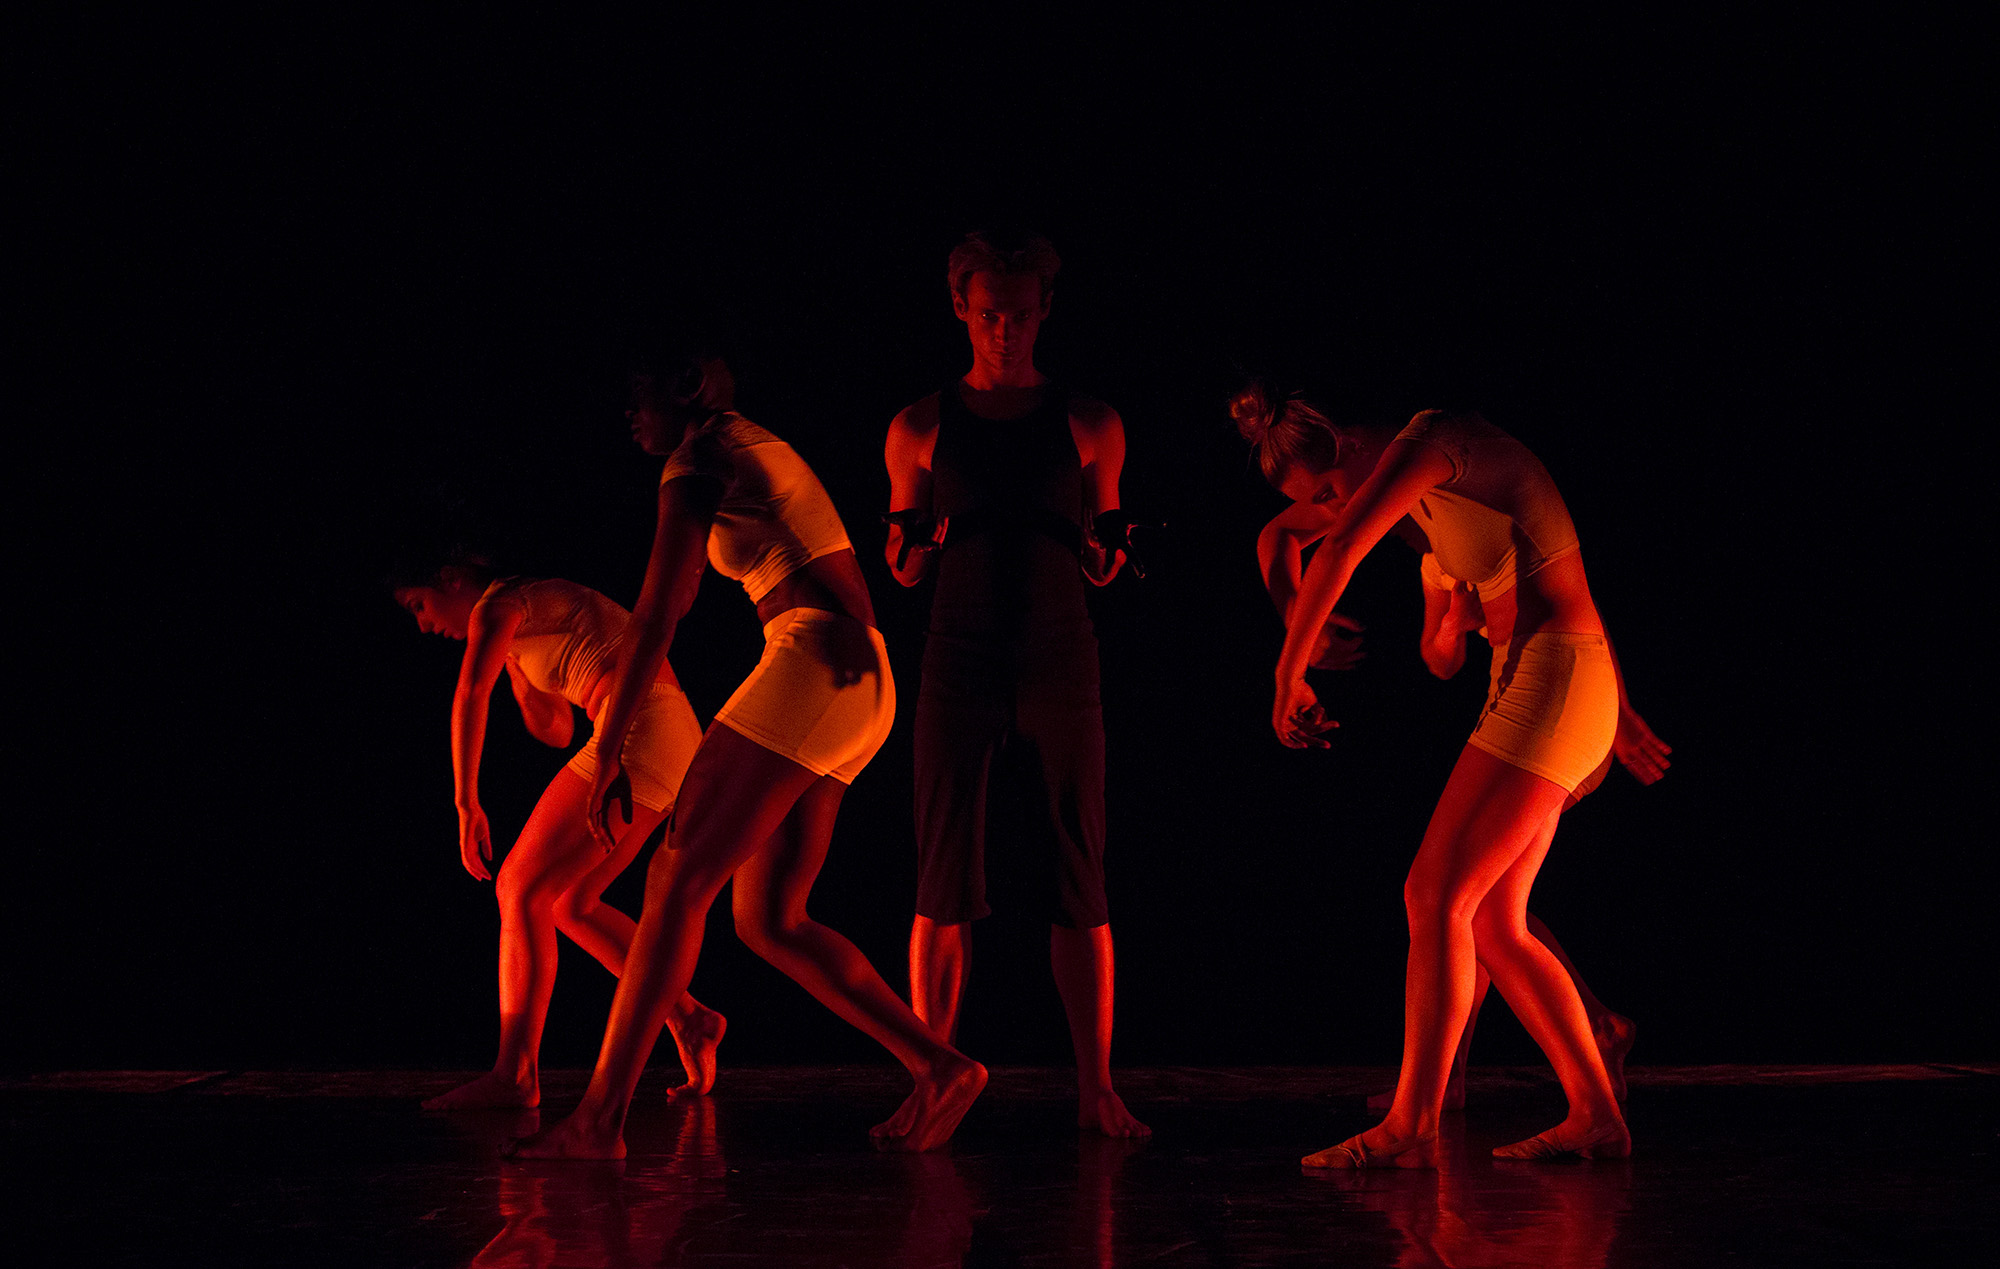 Pierce Dance & Theatre presented Montage this past weekend